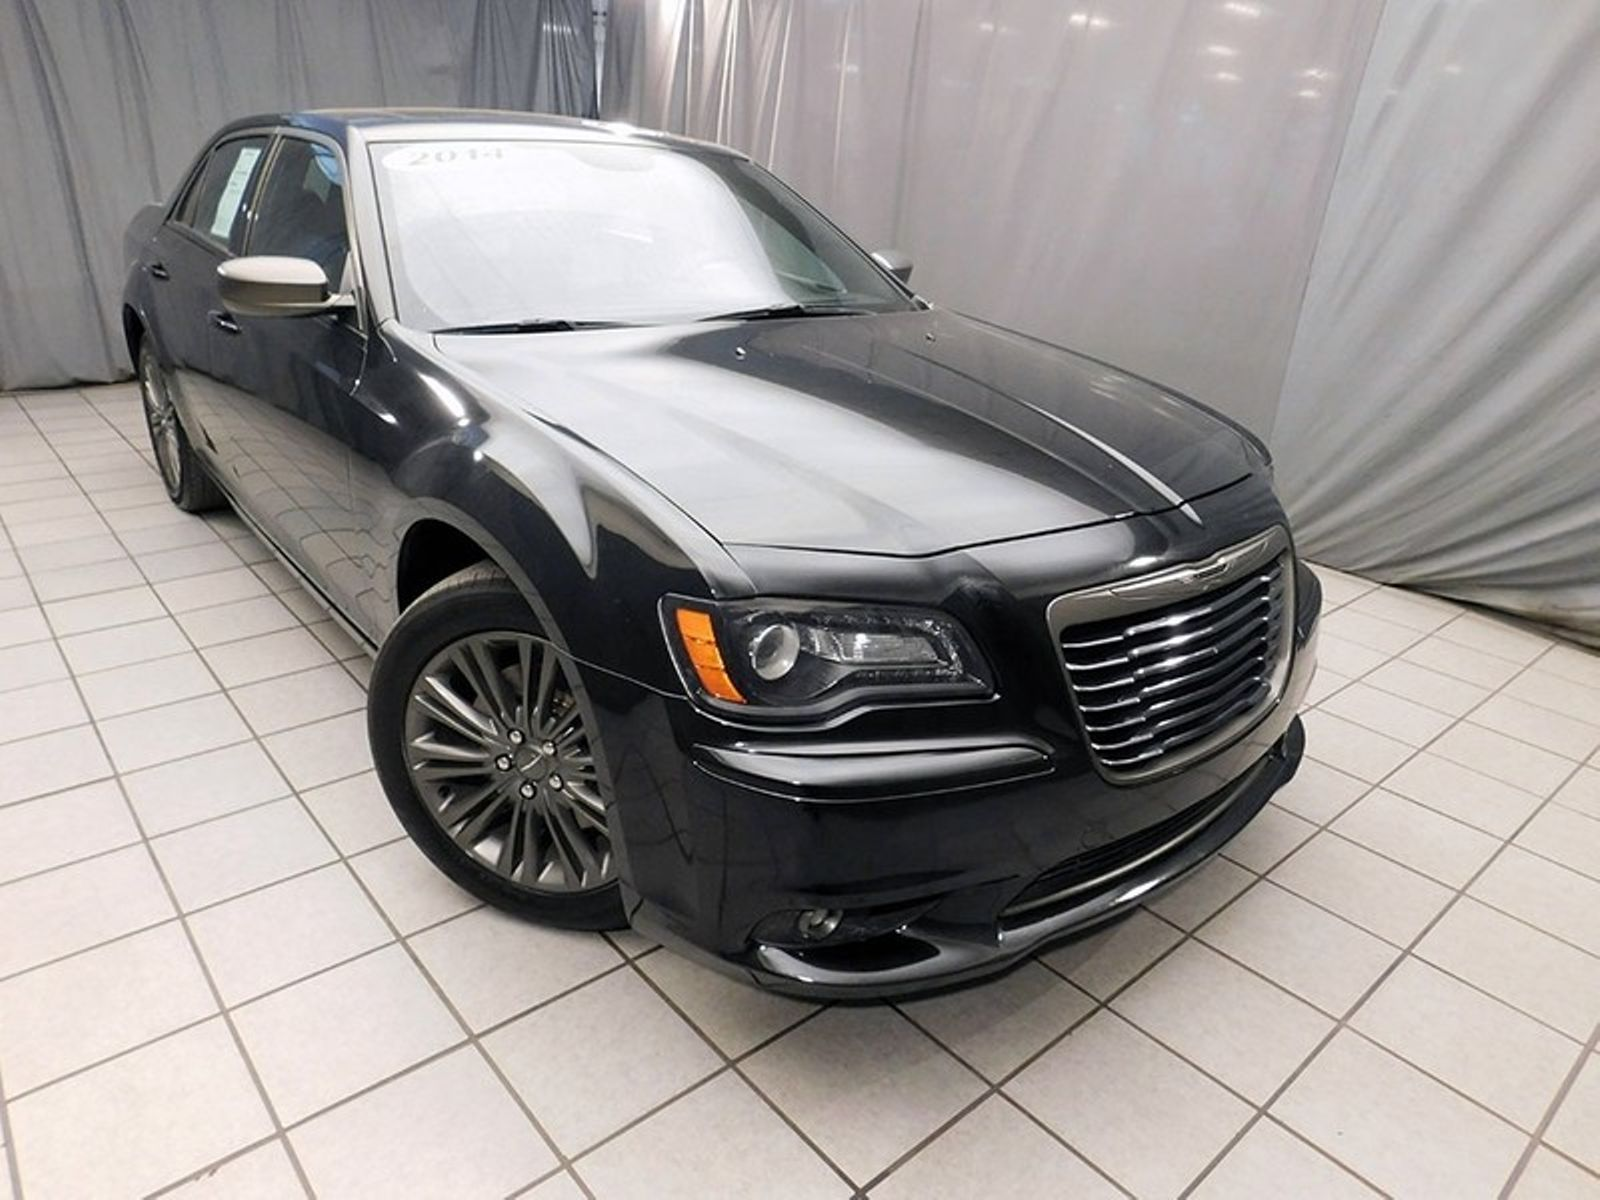 size version for sale forums page limited edition generation image discussion chrysler views john luxury click larger varvatos name